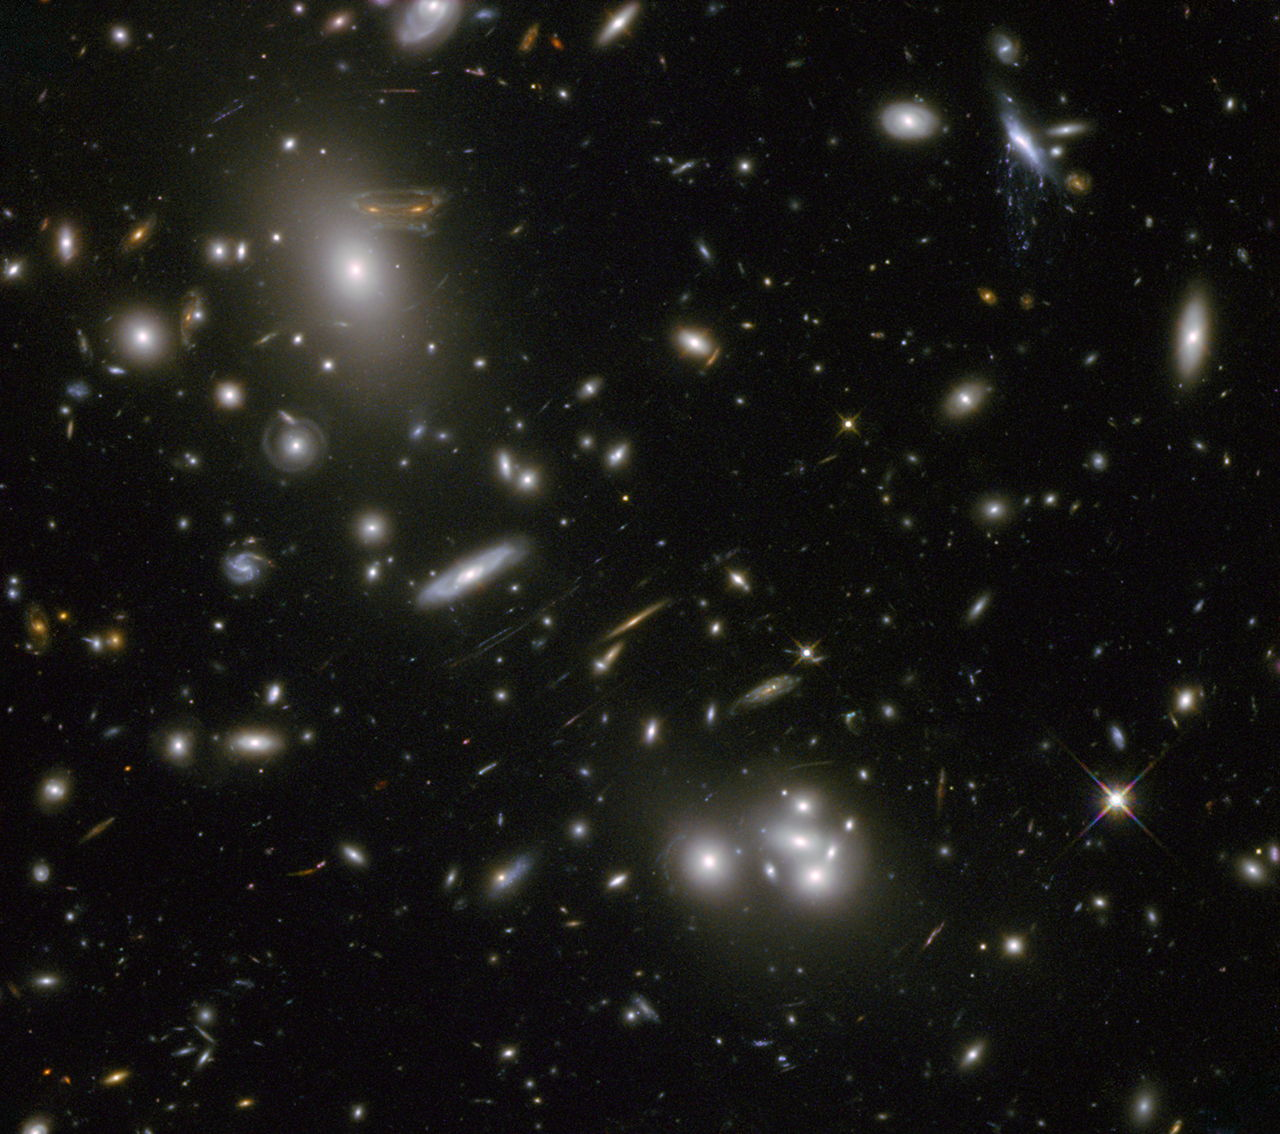 Heritage Image of Galaxy Cluster Abell 68